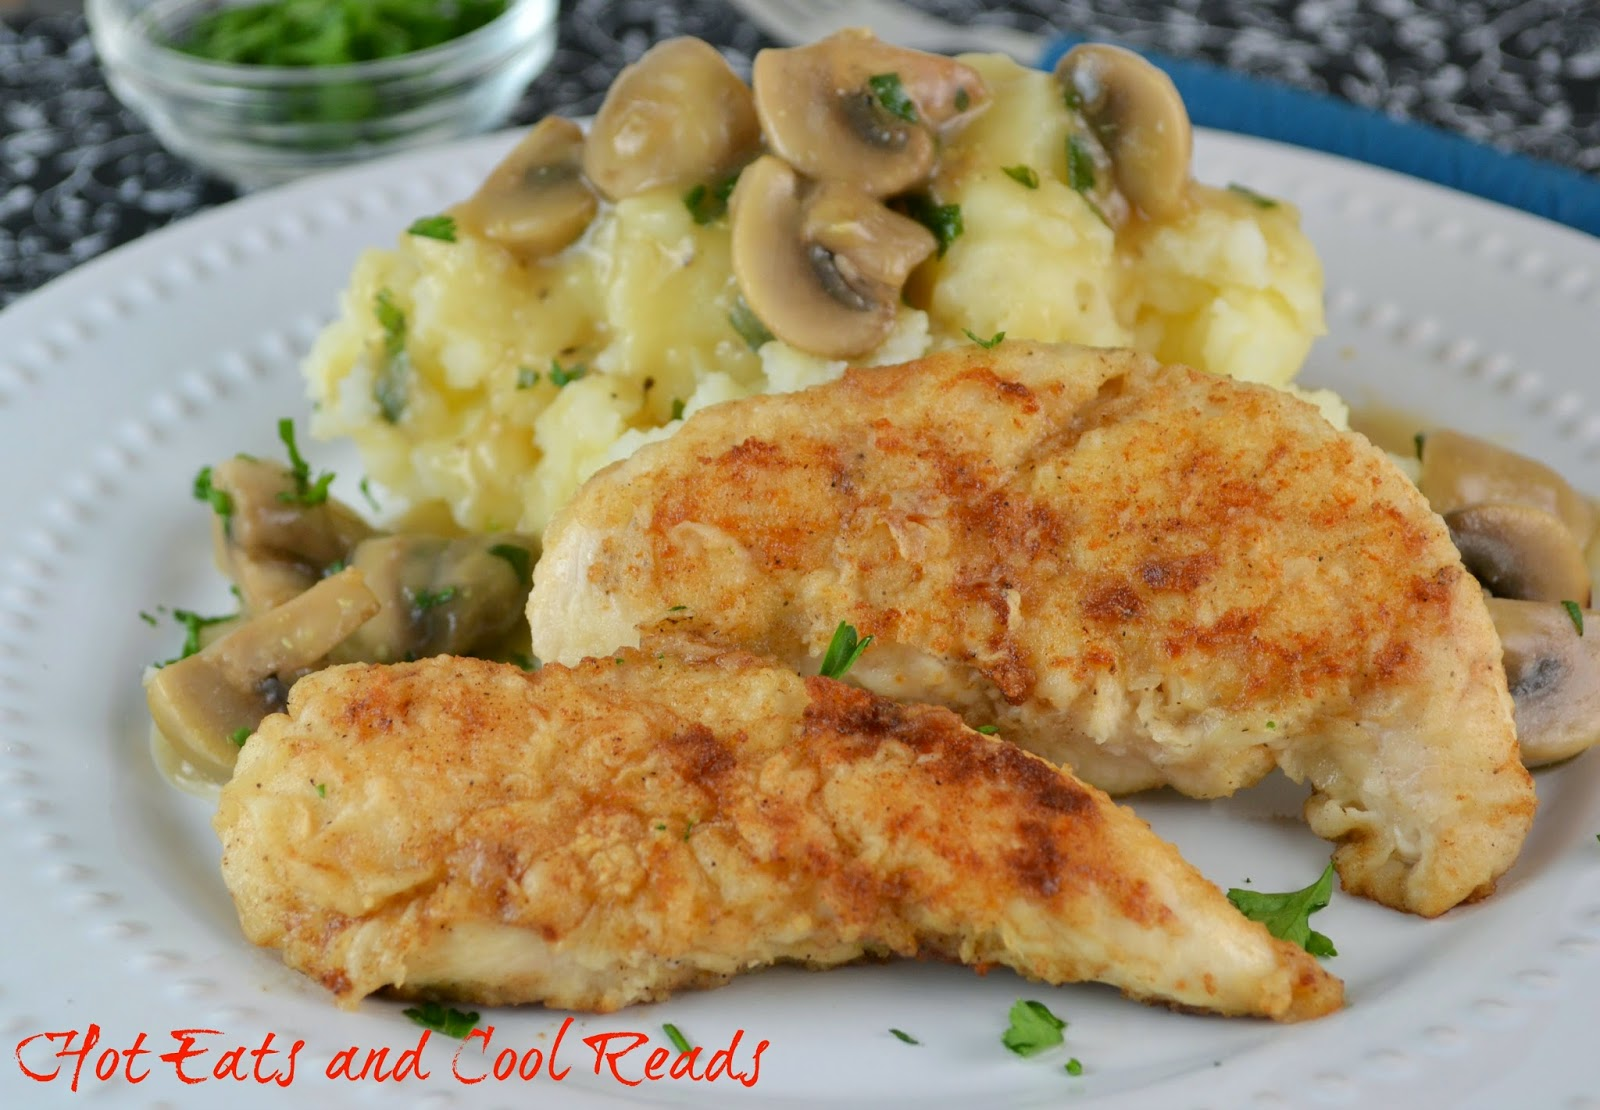 A delicious meat and potatoes dinner the whole family will enjoy! Pan Fried Chicken Tenderloins with Mushroom Gravy from Hot Eats and Cool Reads!